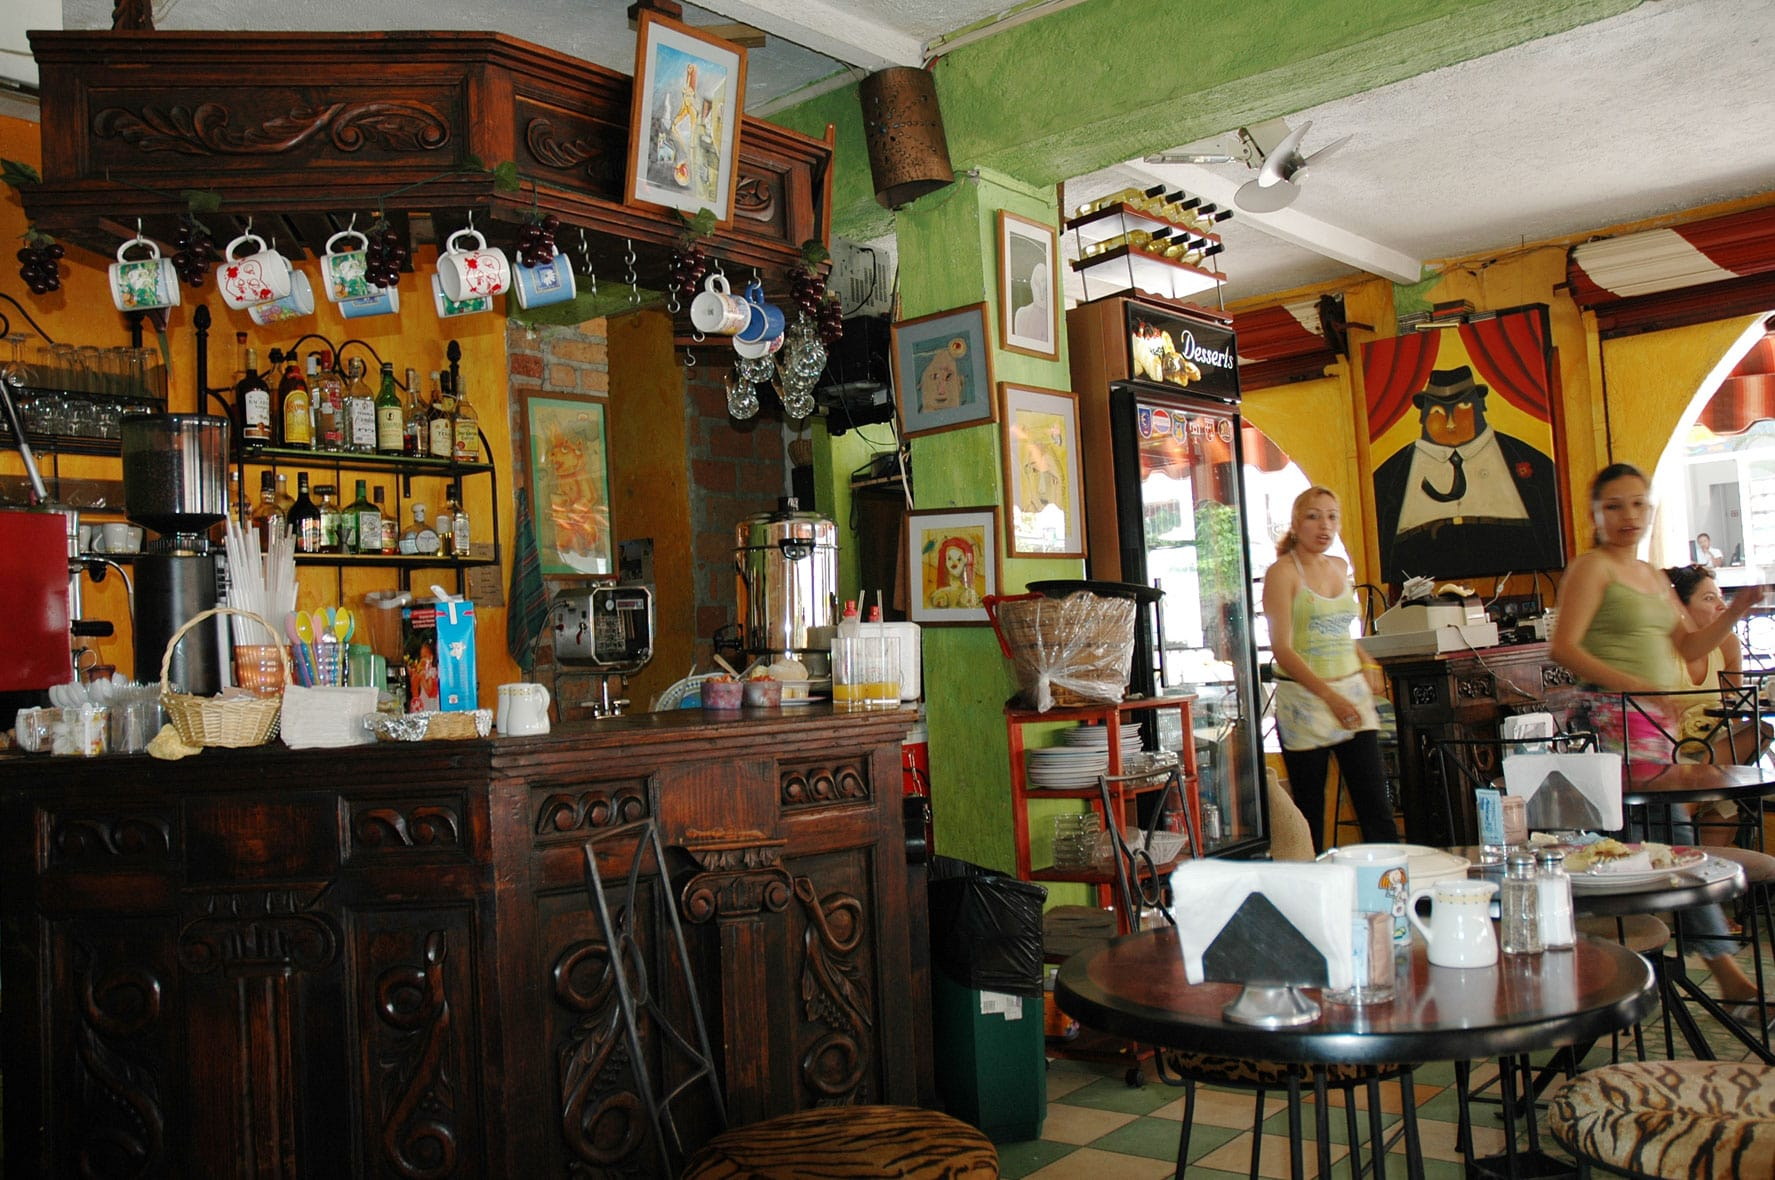 A local eatery in Mexico City